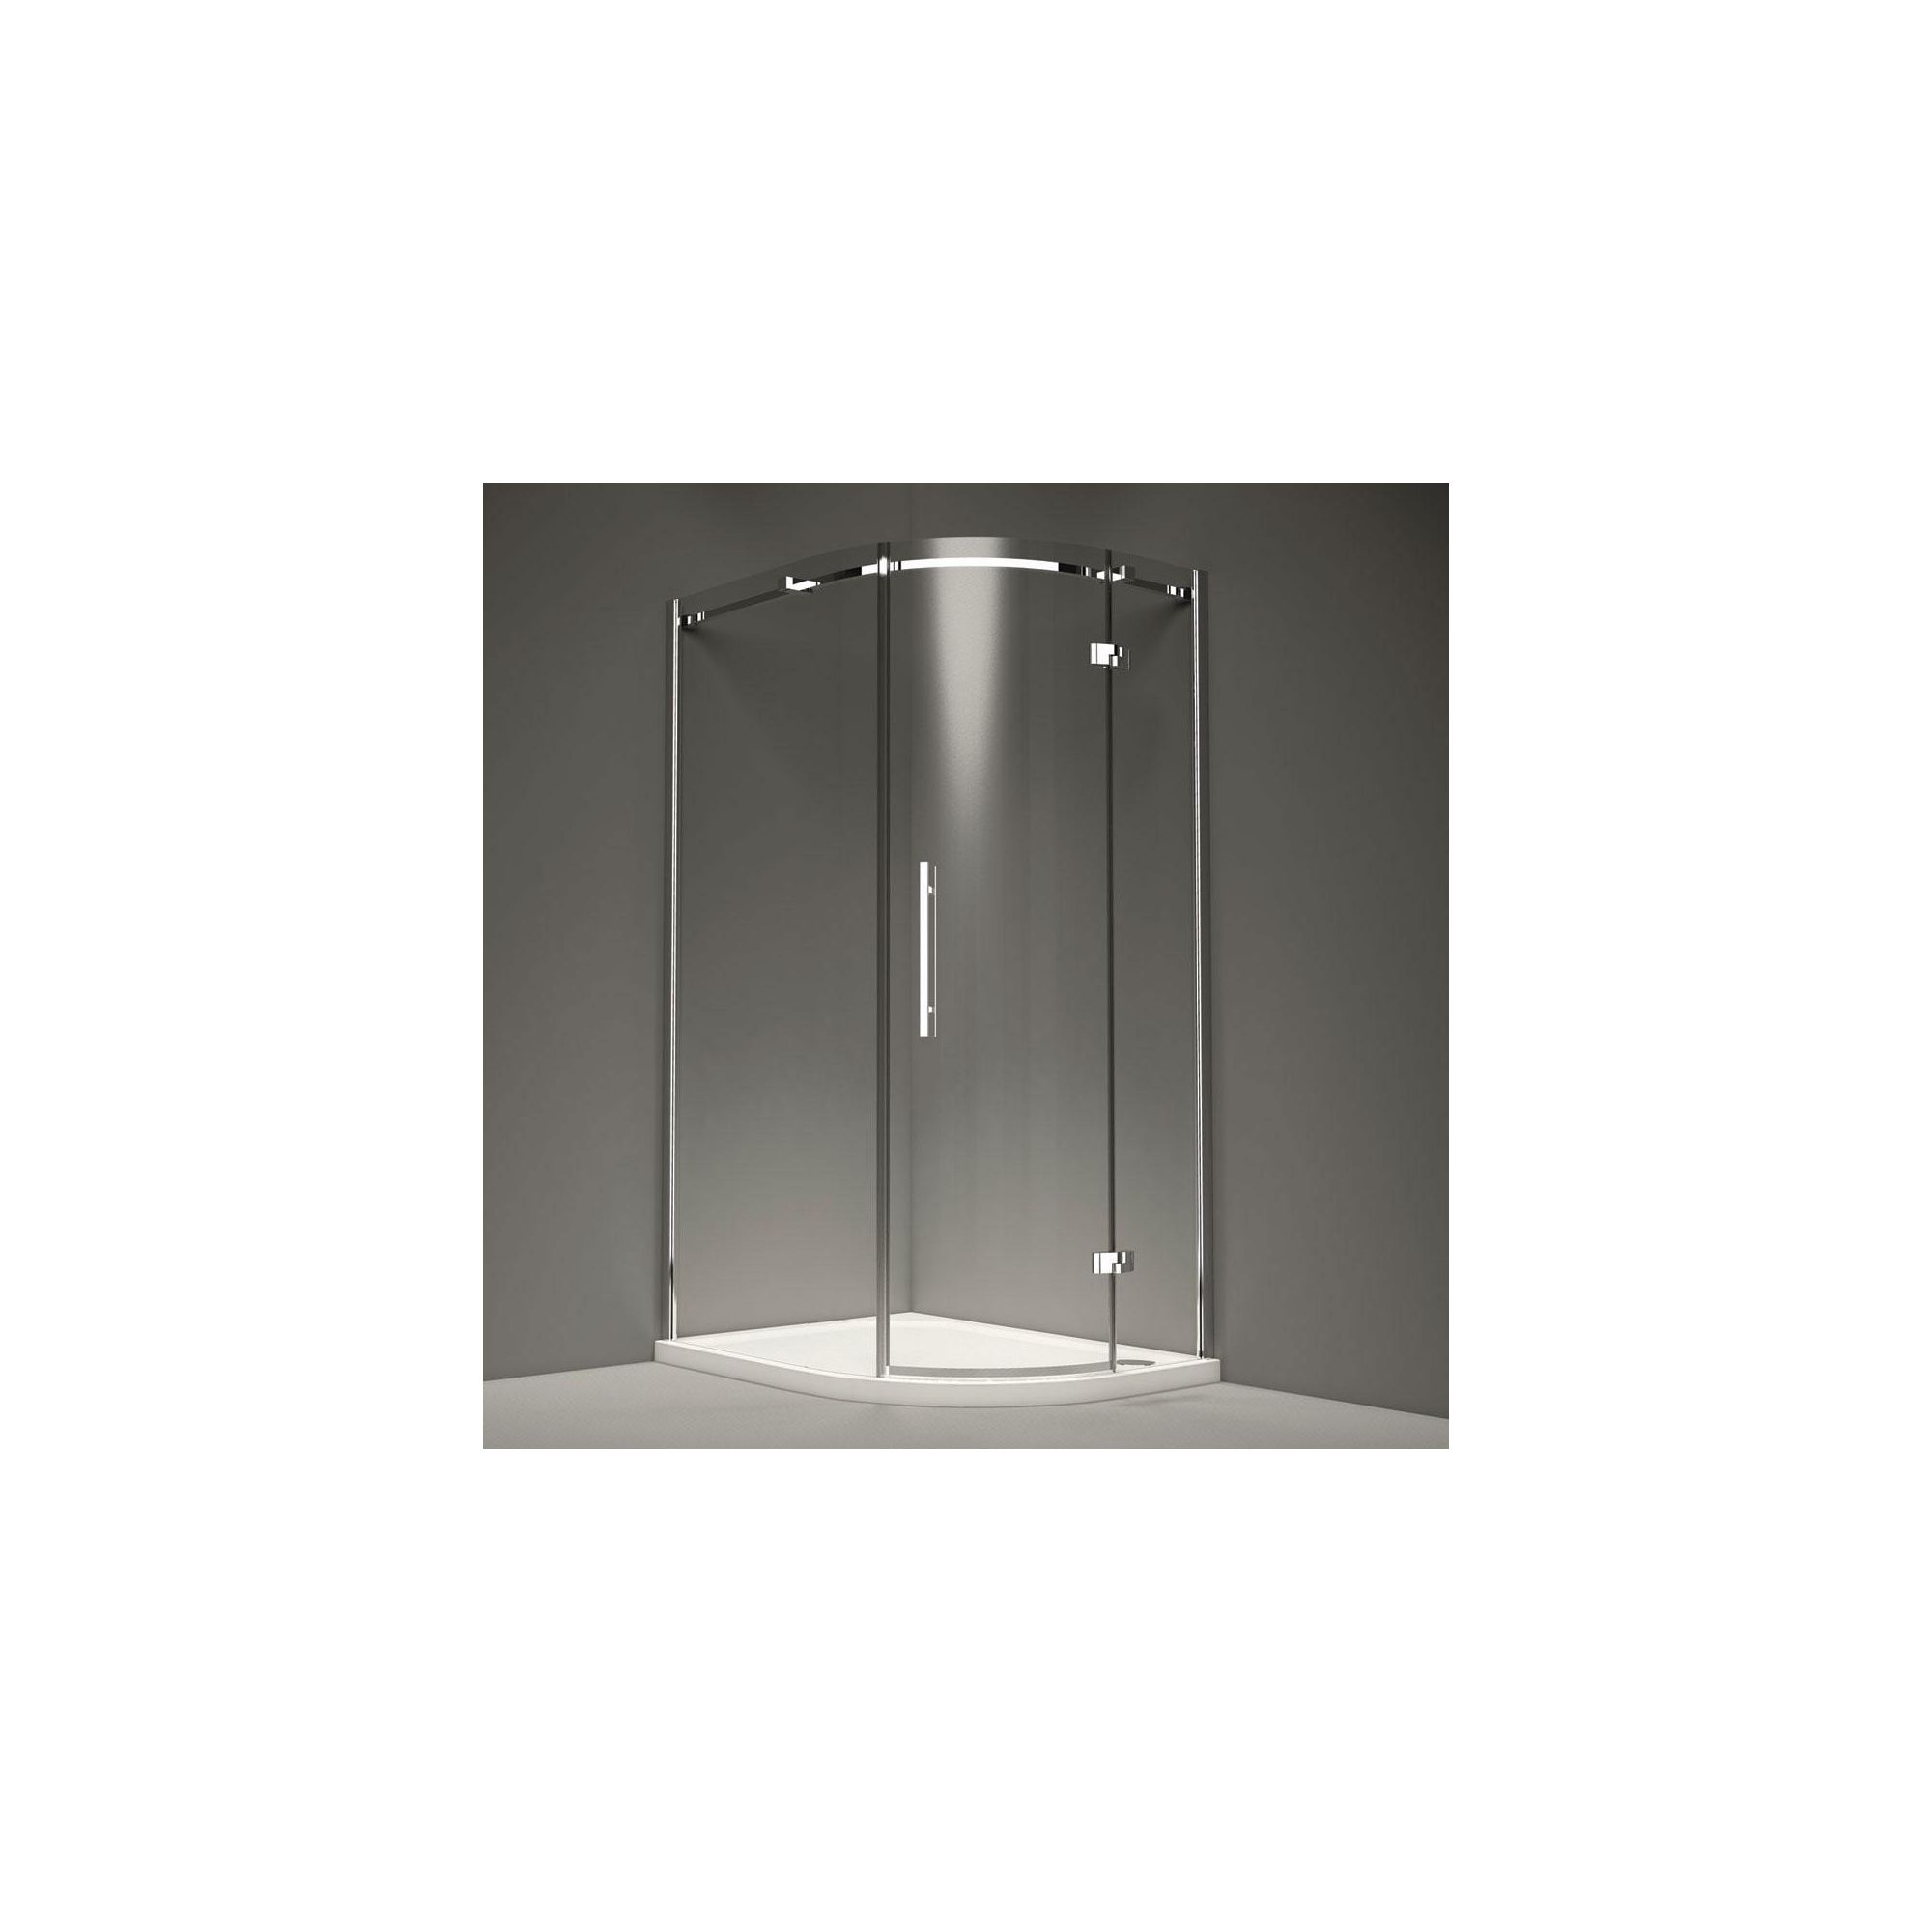 Merlyn Series 9 Offset Quadrant Shower Door, 1200mm x 800mm, 8mm Glass, Right Handed at Tesco Direct